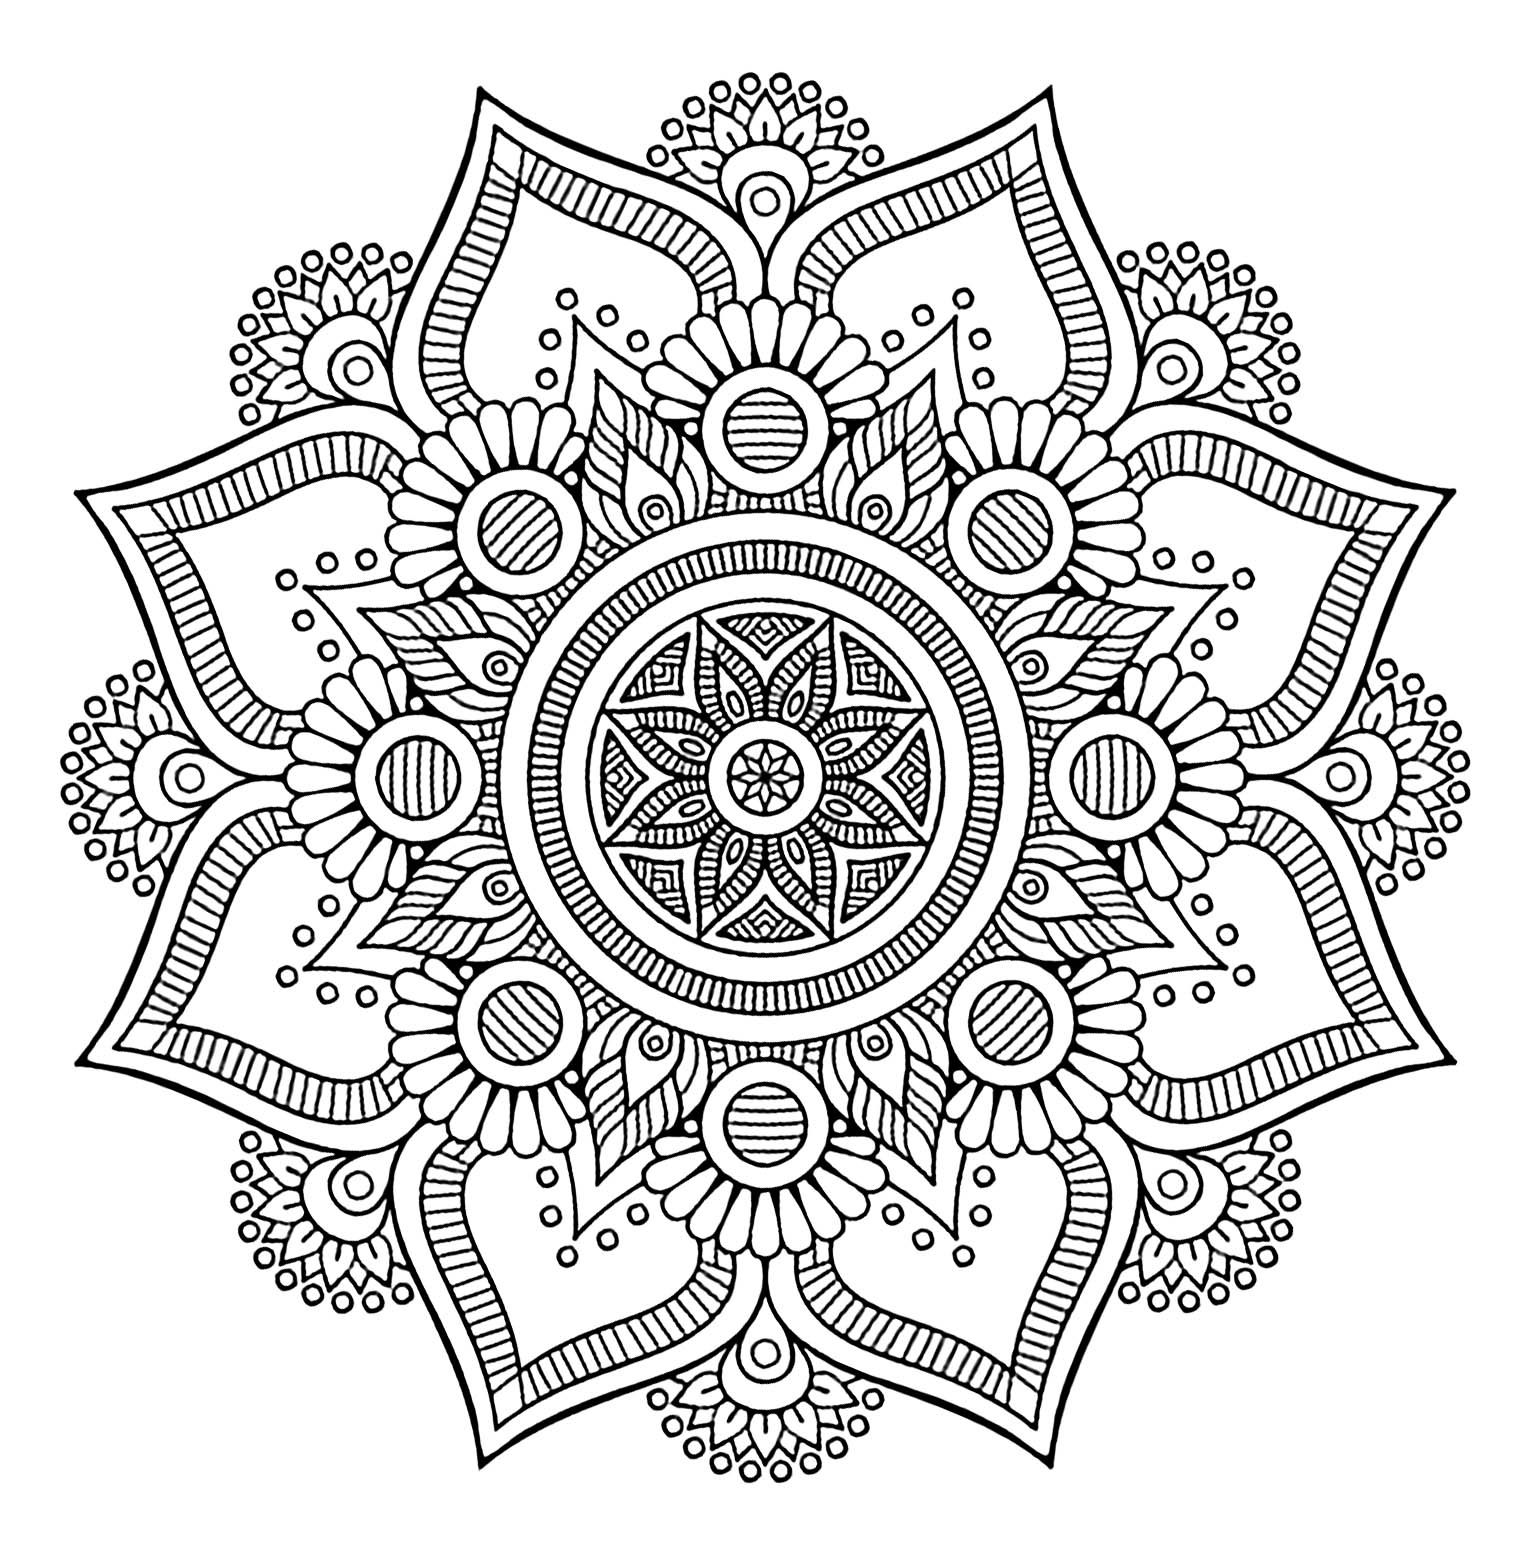 Cool Mandala with 8 big petals and vegetal patterns